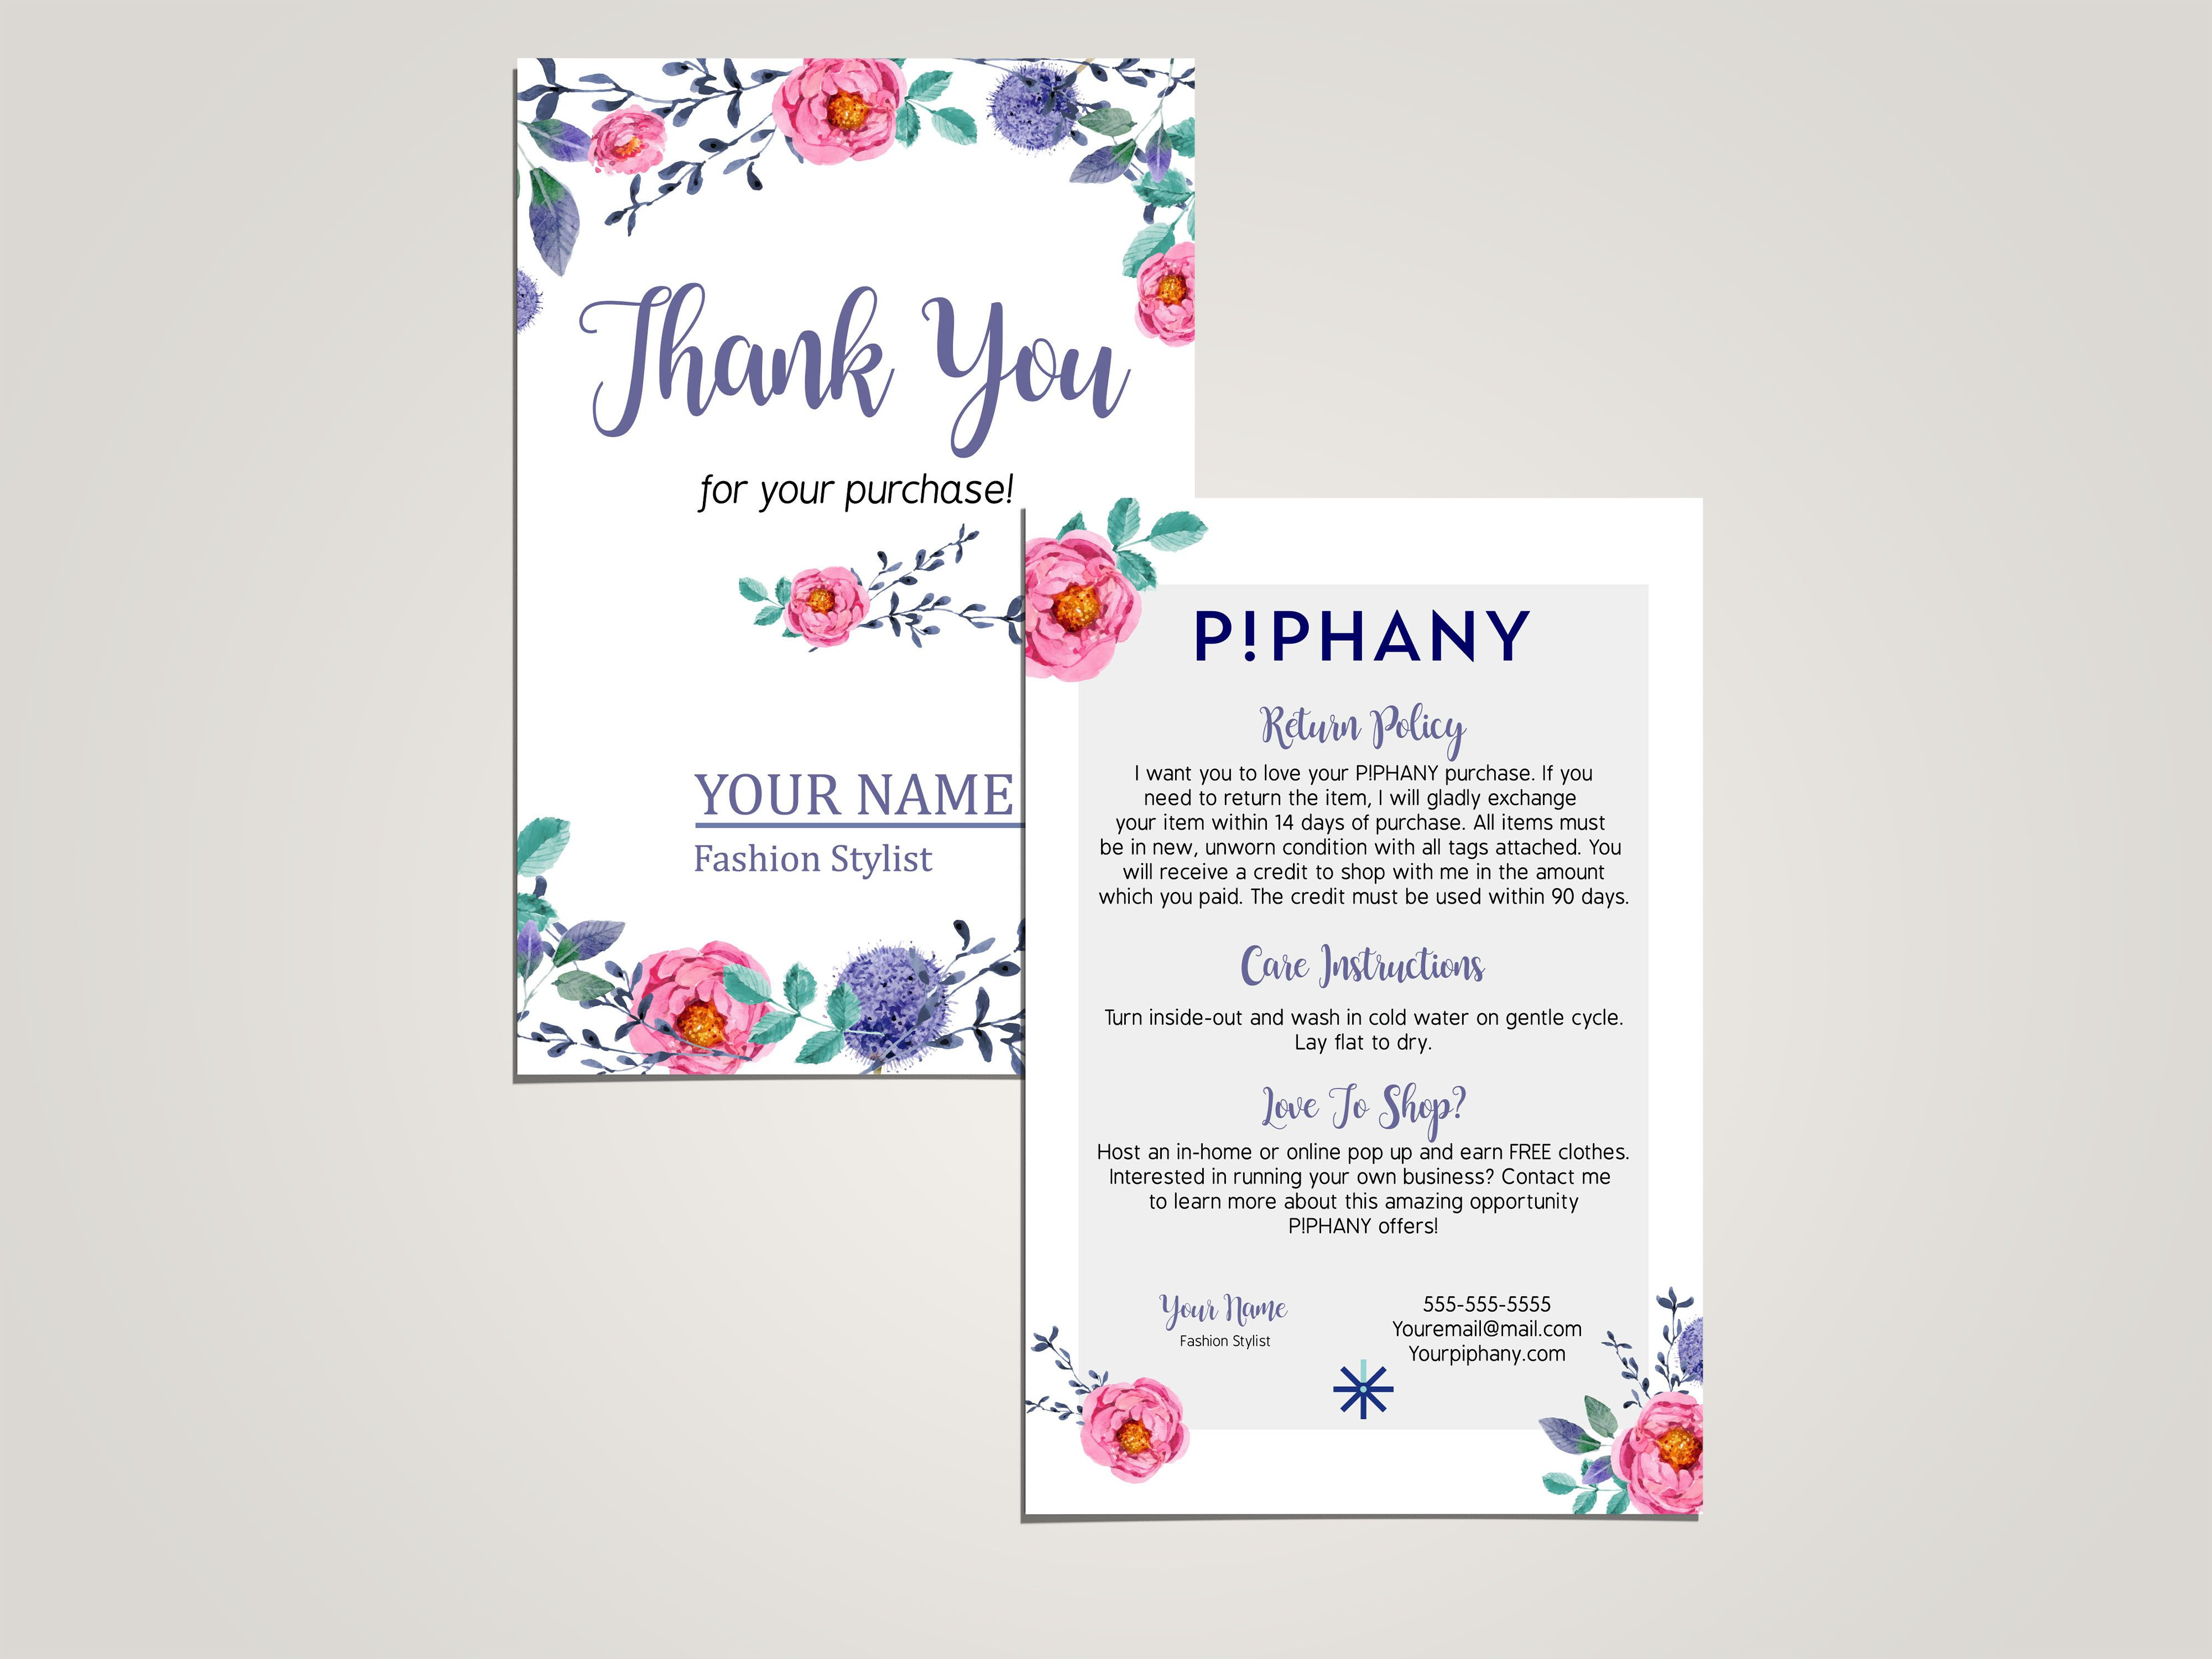 Piphany thank you card and how to care card watercolor all marketing material to grow up for your independent business at kakao designs digital and printed goods for direct sales business kristyandbryce Gallery